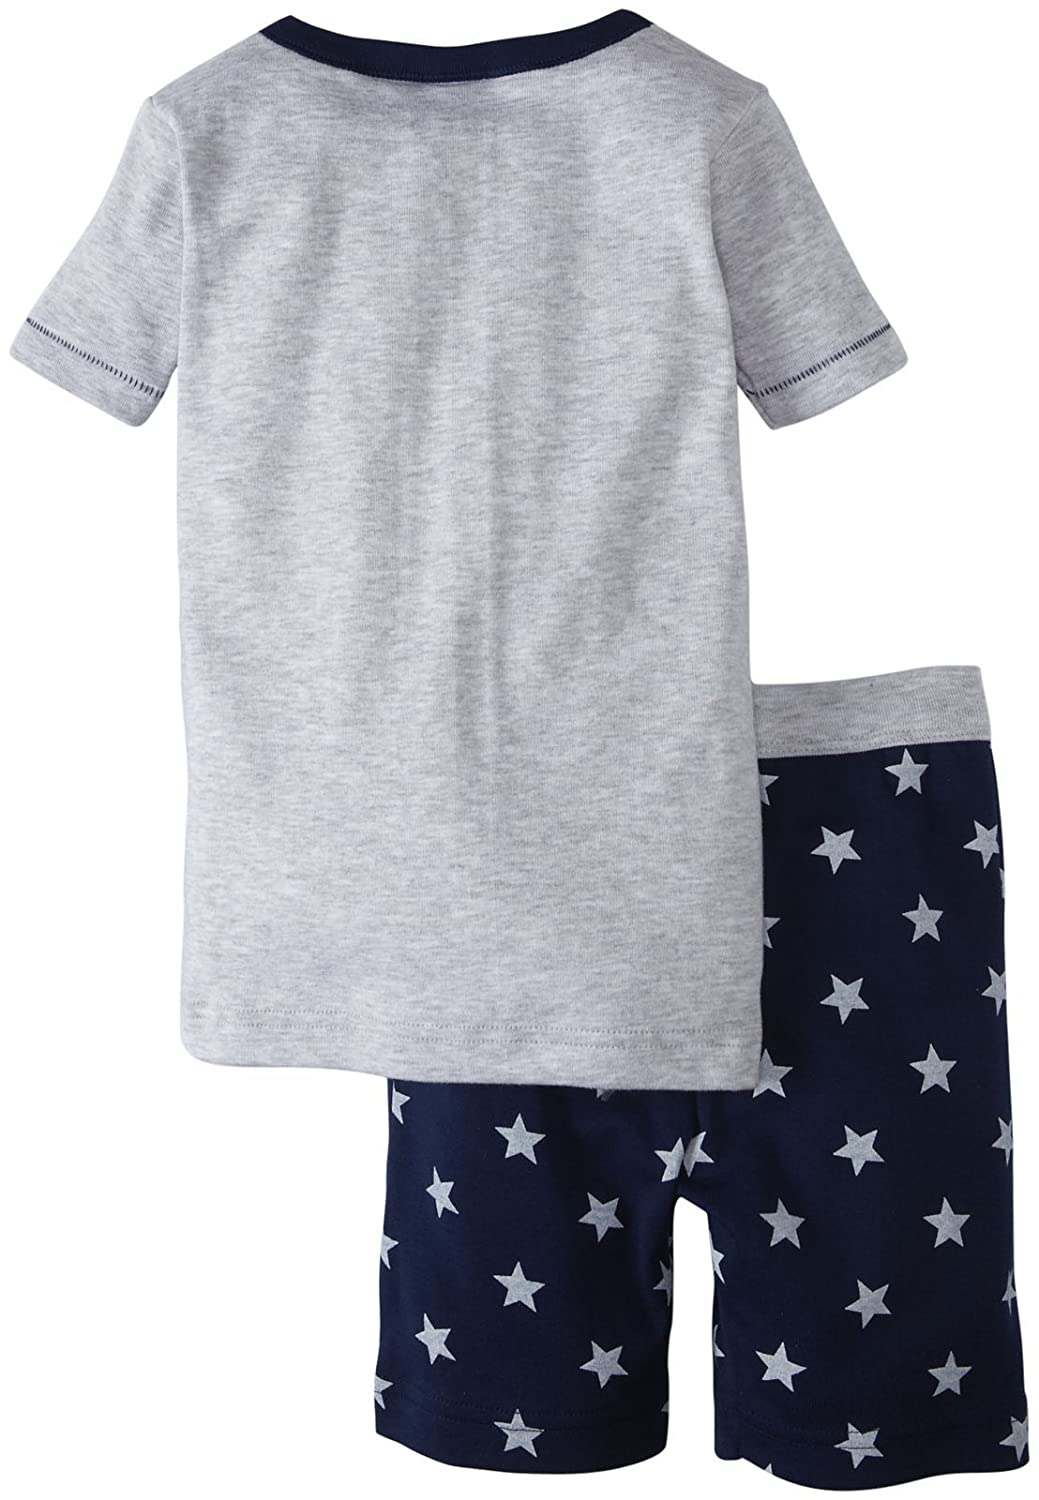 Grey//Navy-2 Years Toddler Kids Petit Bateau Star Print Shorts Set